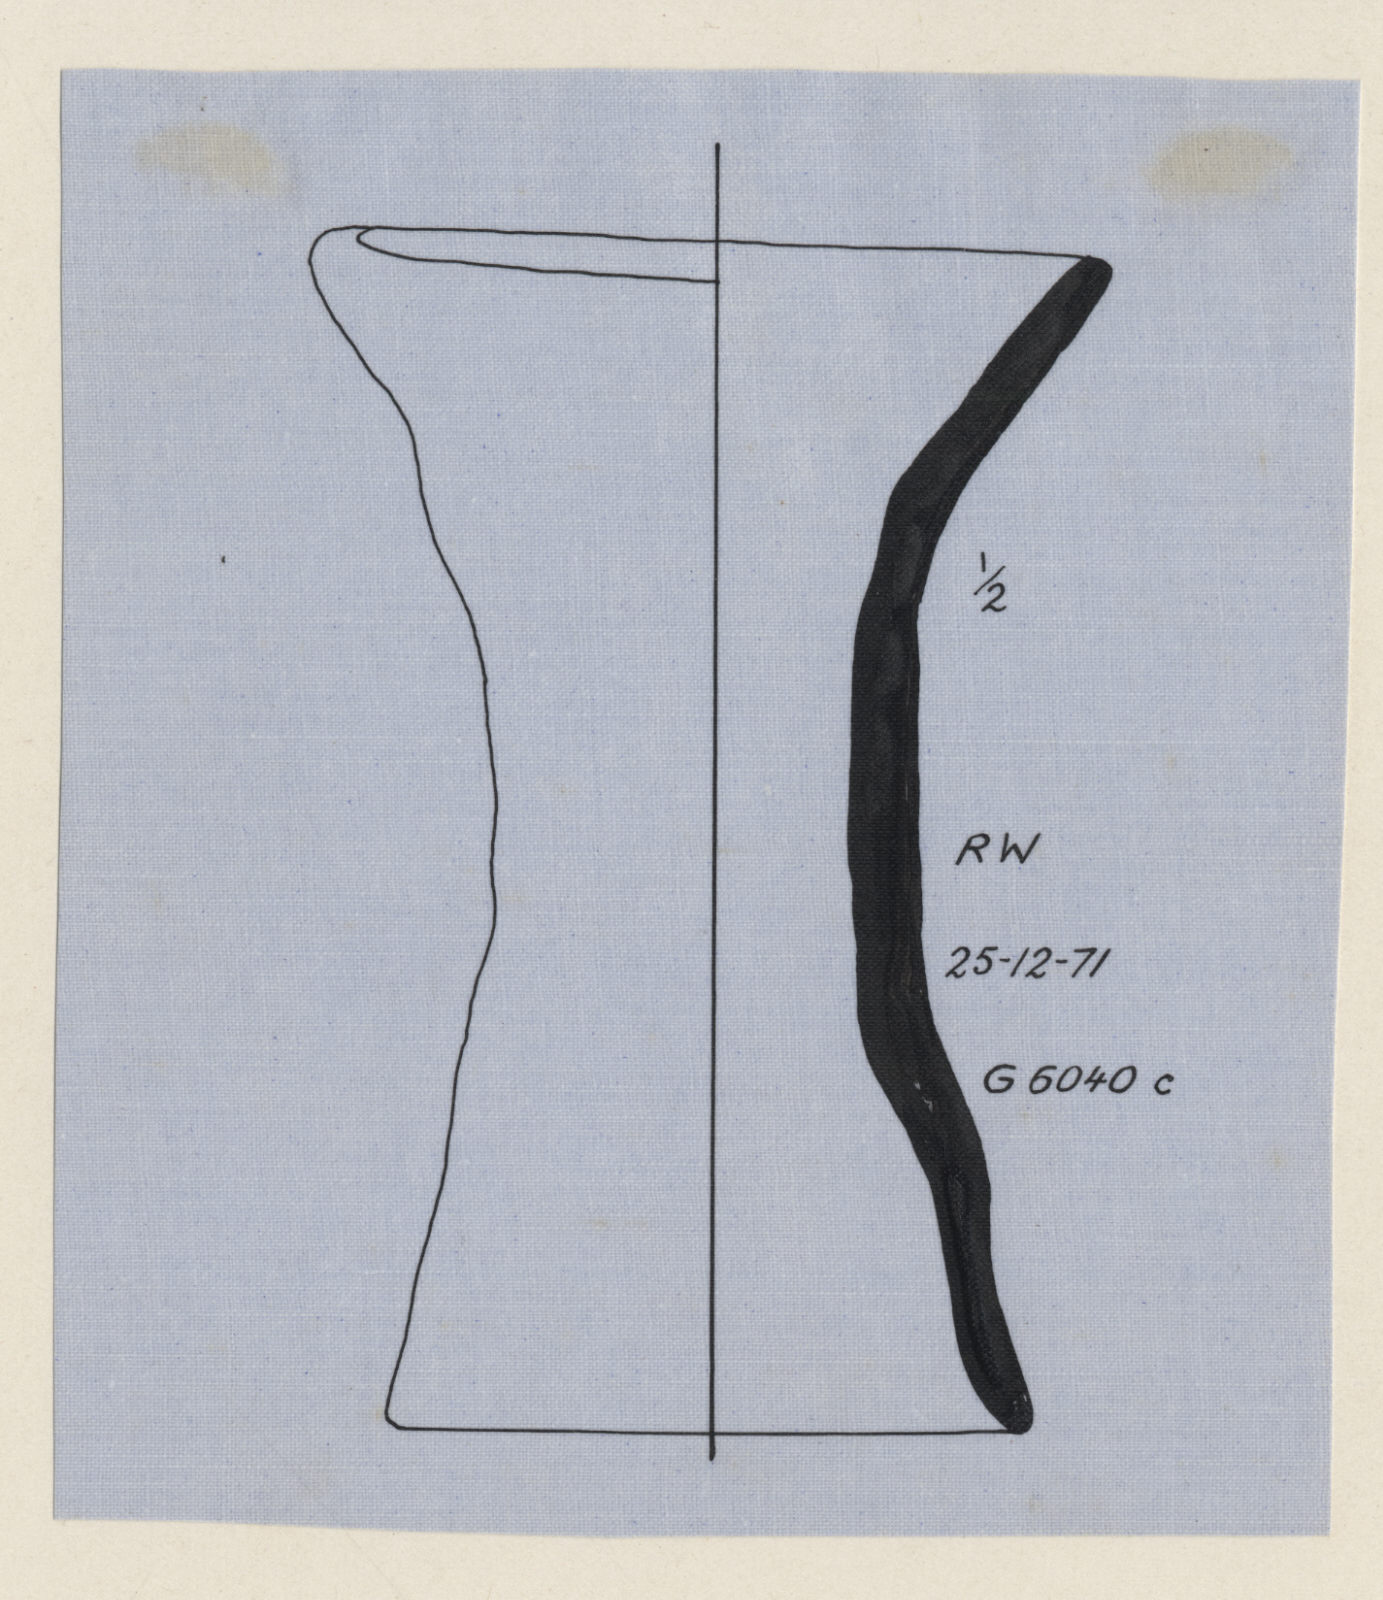 """Drawings: G 6040, Room """"c"""": pottery, stand"""